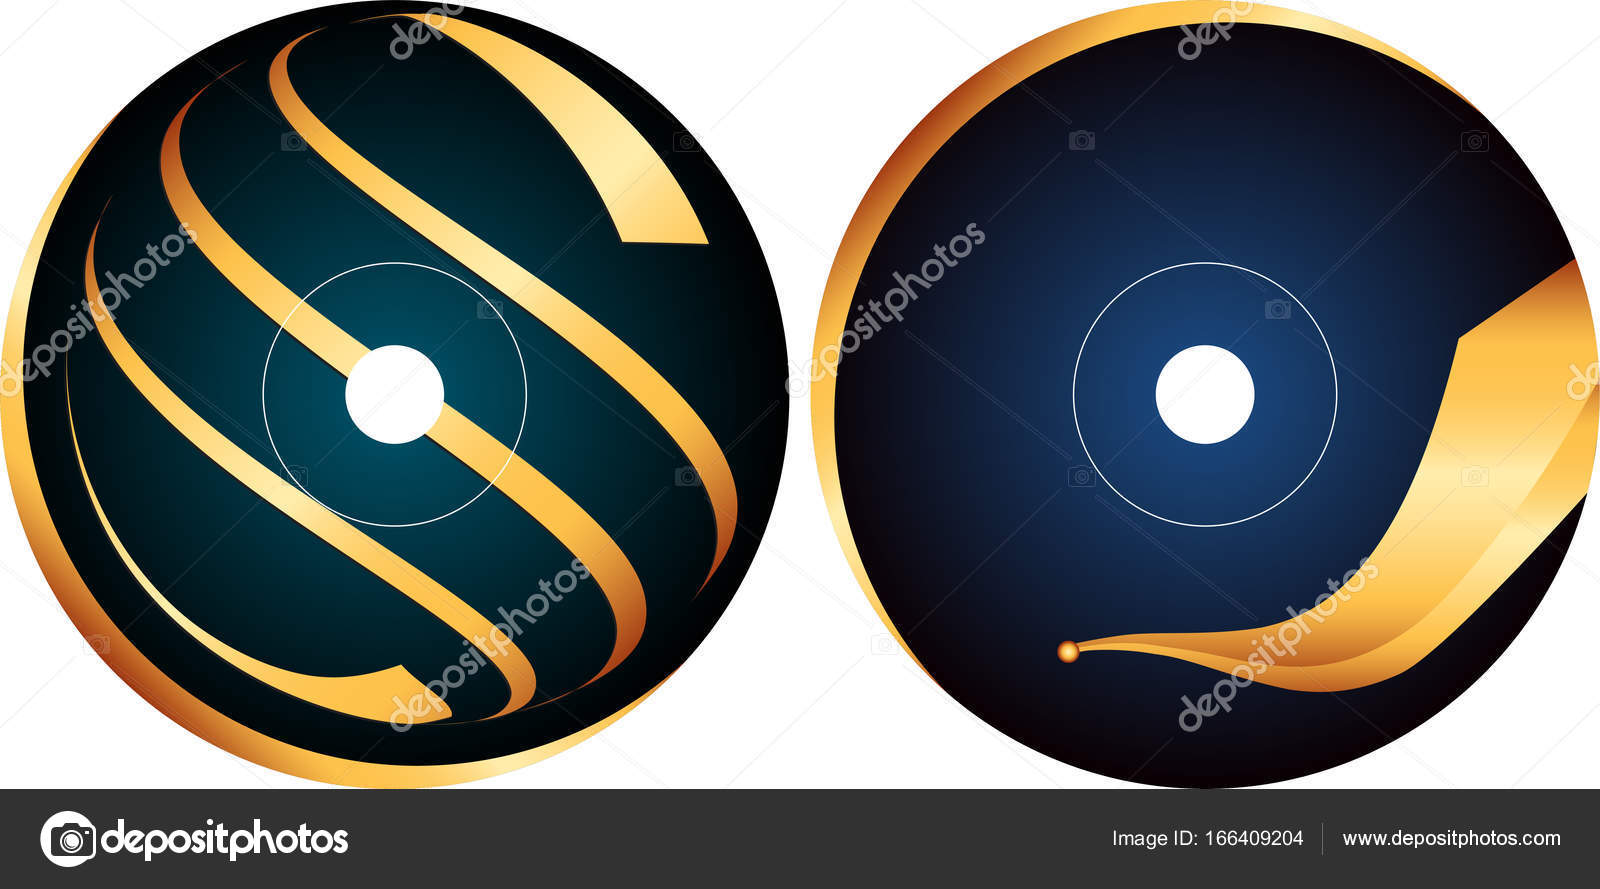 cd dvd label design template stock vector ajayshrivastava